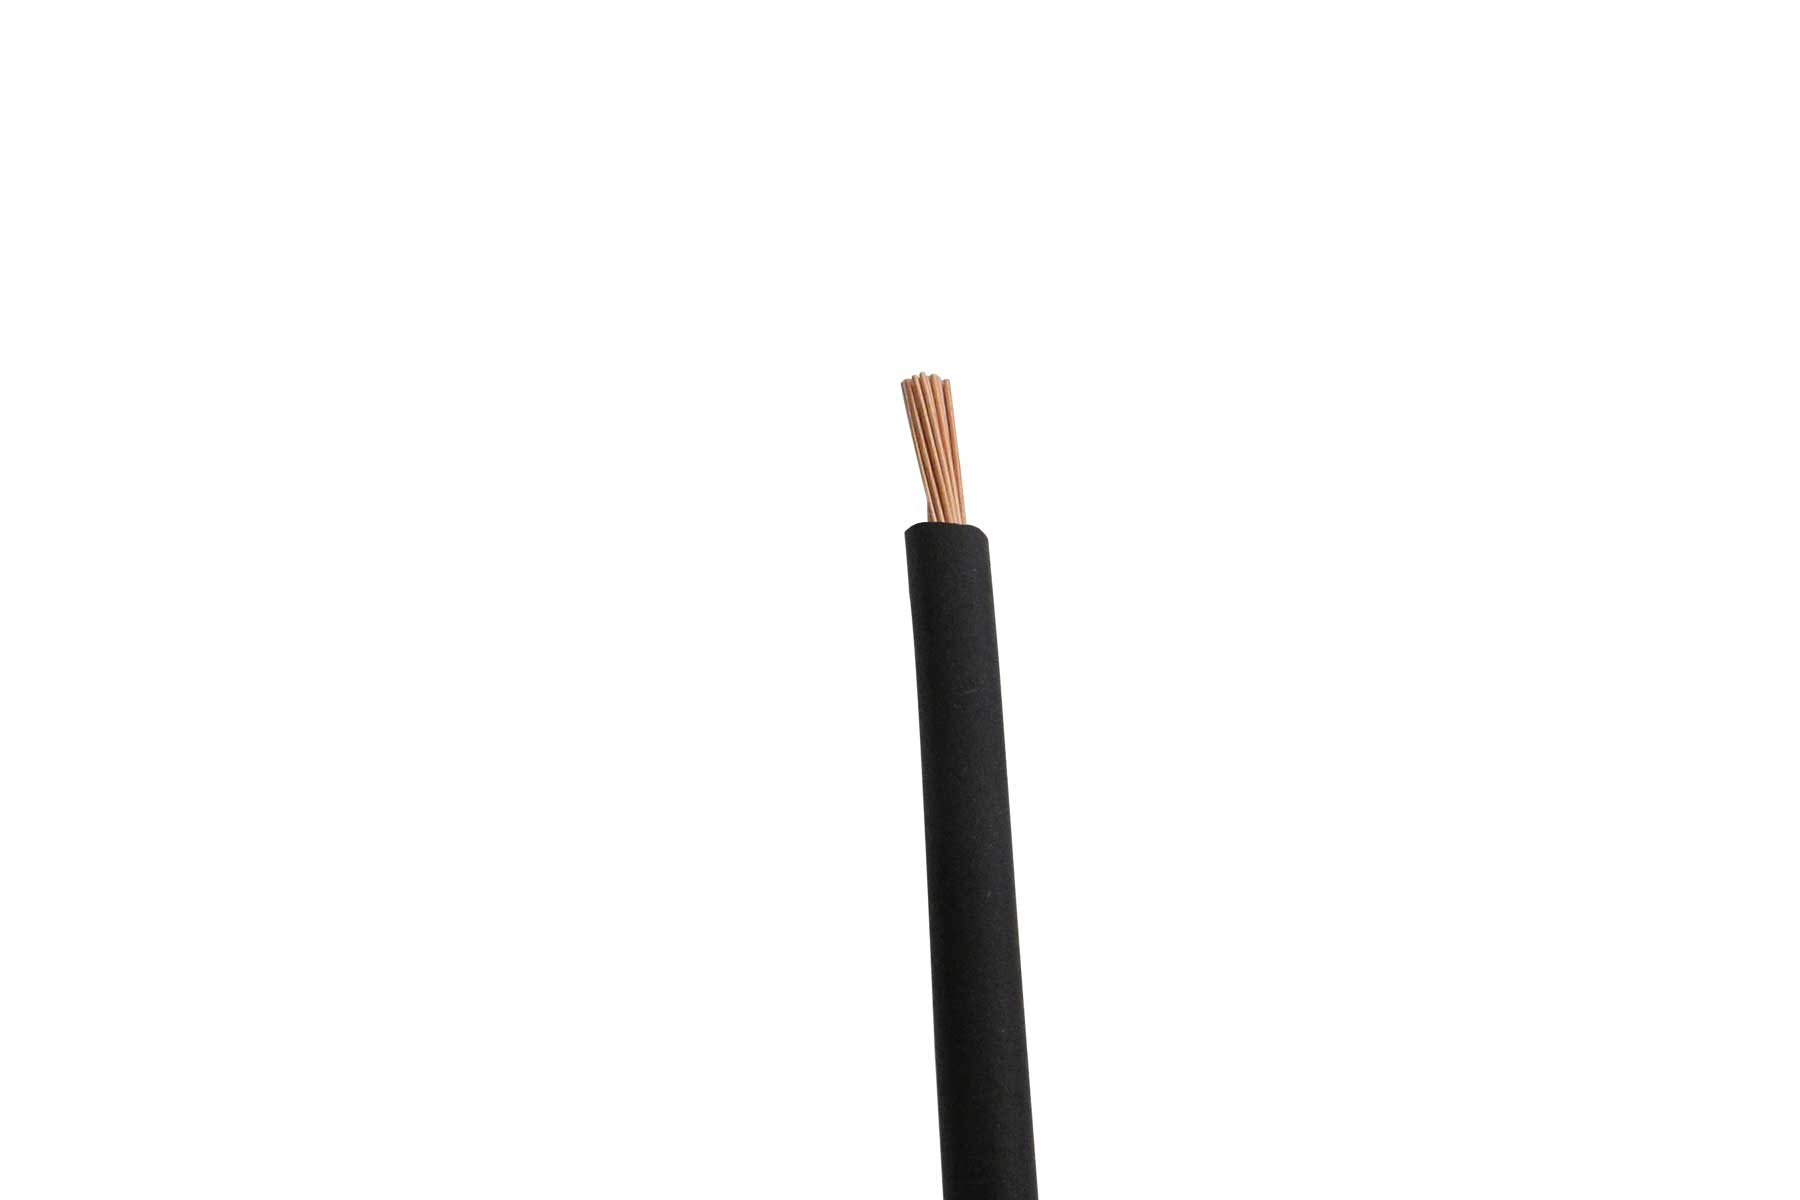 TEW Single Conductor Electrical Copper Wire